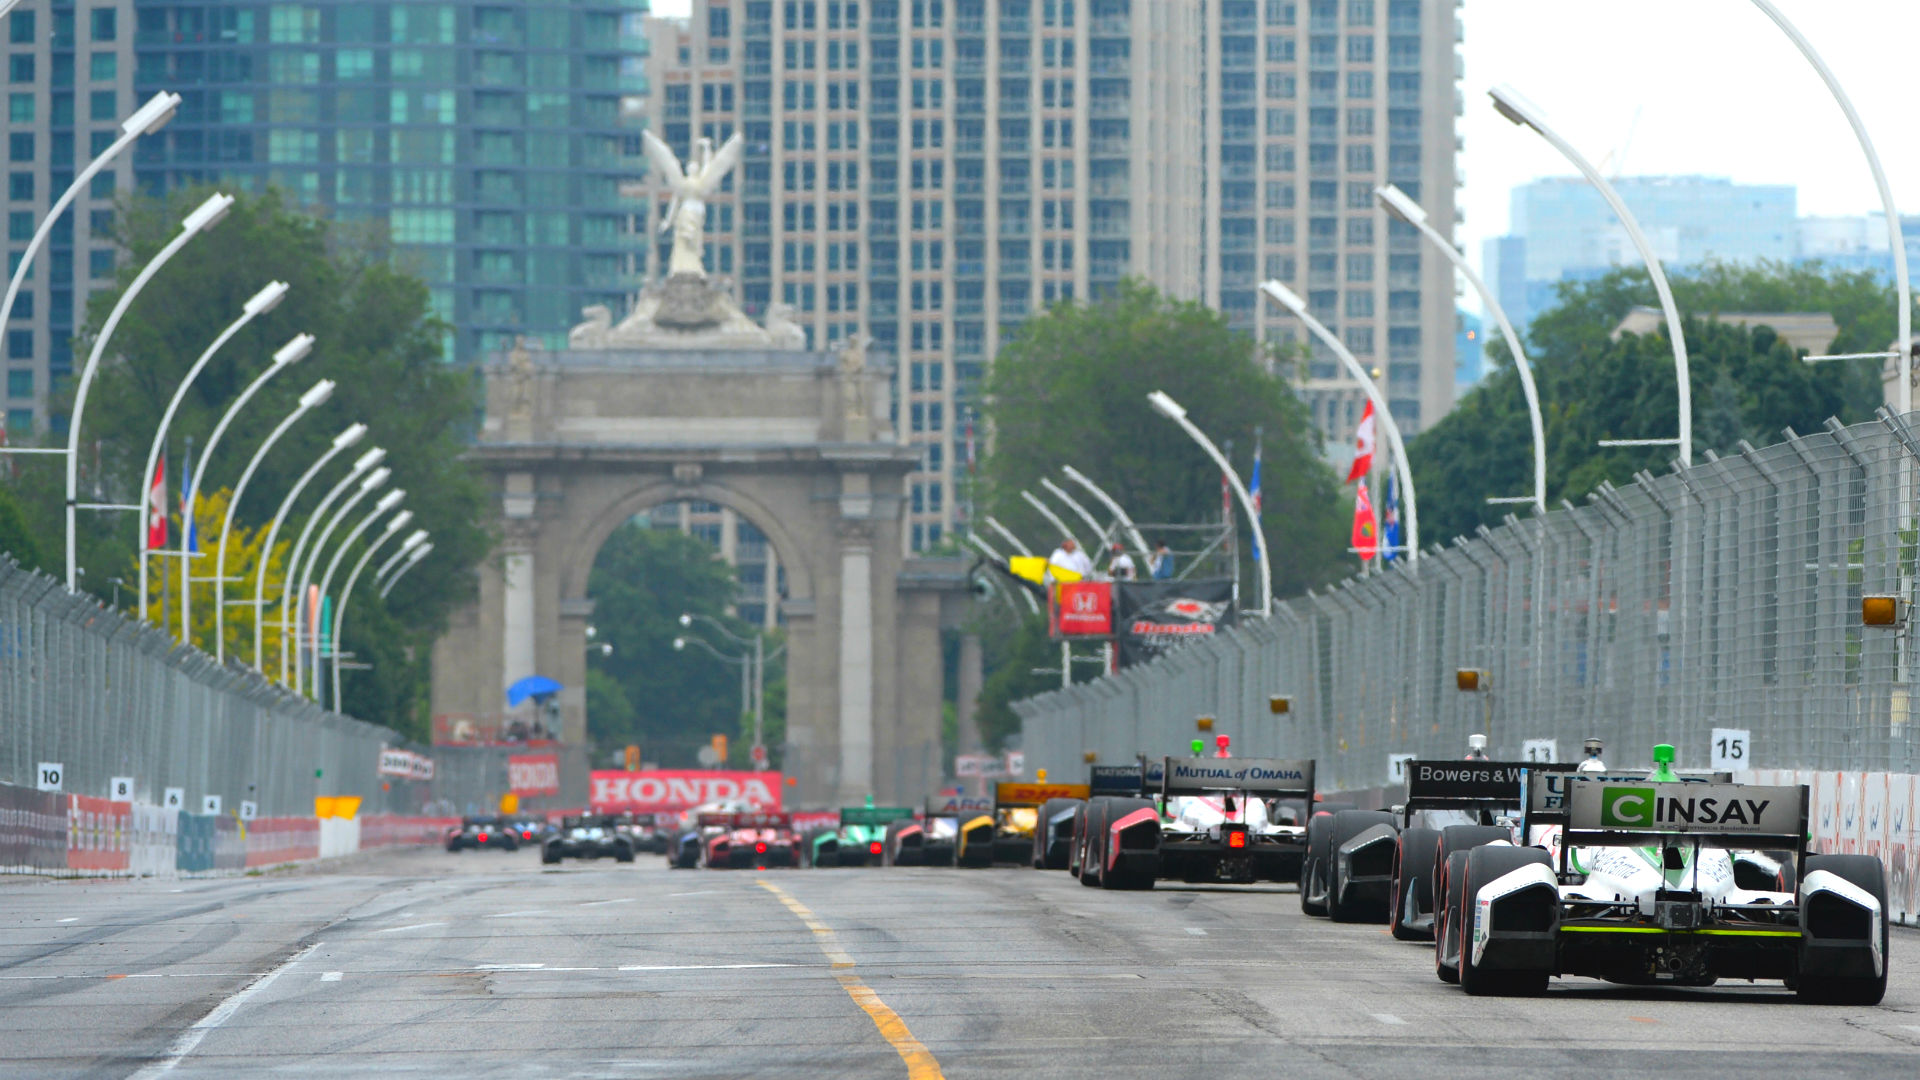 IndyCar at Toronto: TV schedule, start time, channel, live steam for 2019 race